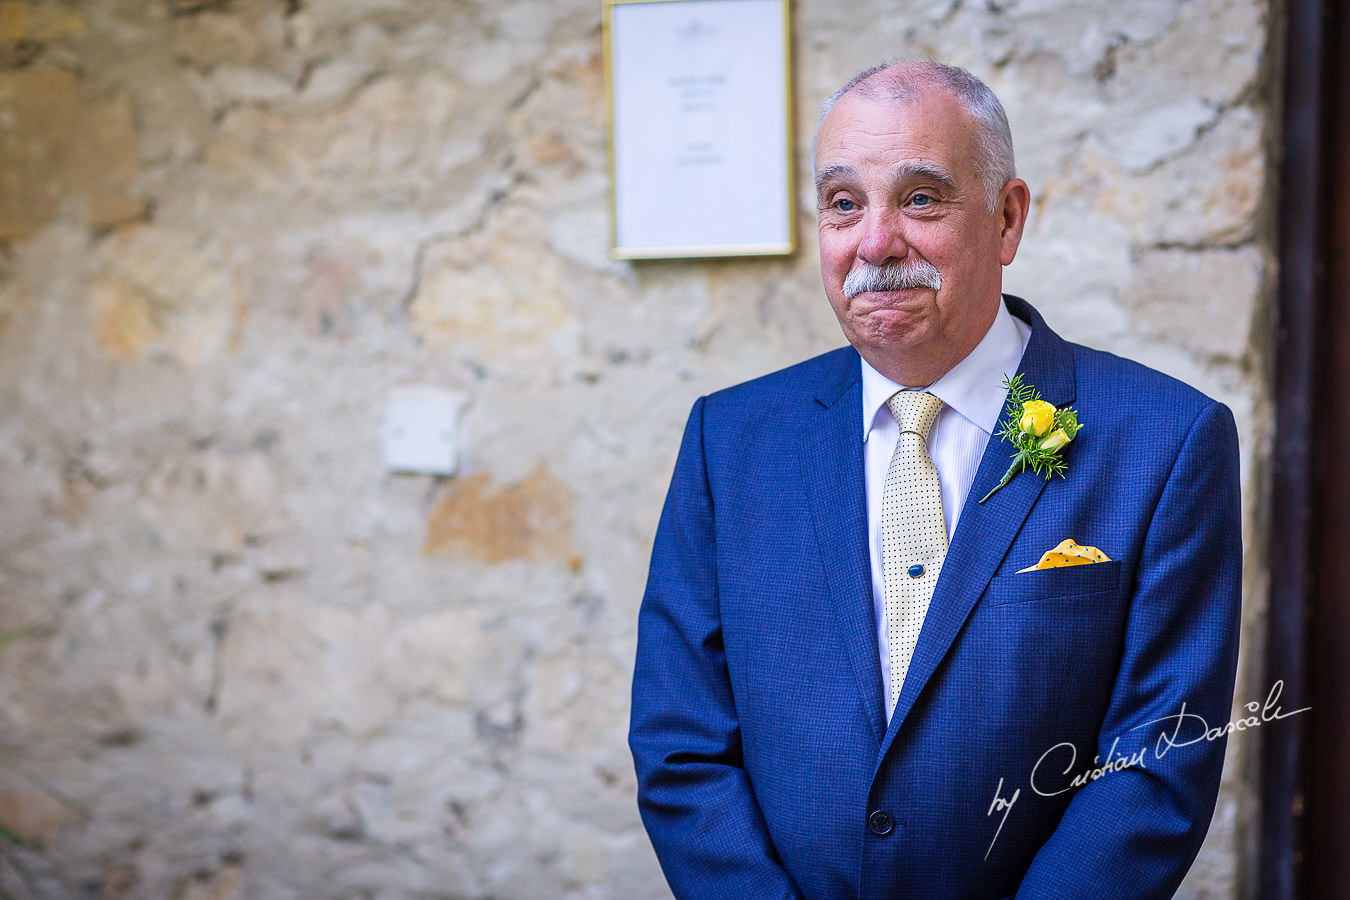 A beautiful wedding day at the Vasilias Nikoklis Inn in Paphos, captured by Cristian Dascalu. The father of the bride is overwhelmed by emotions.